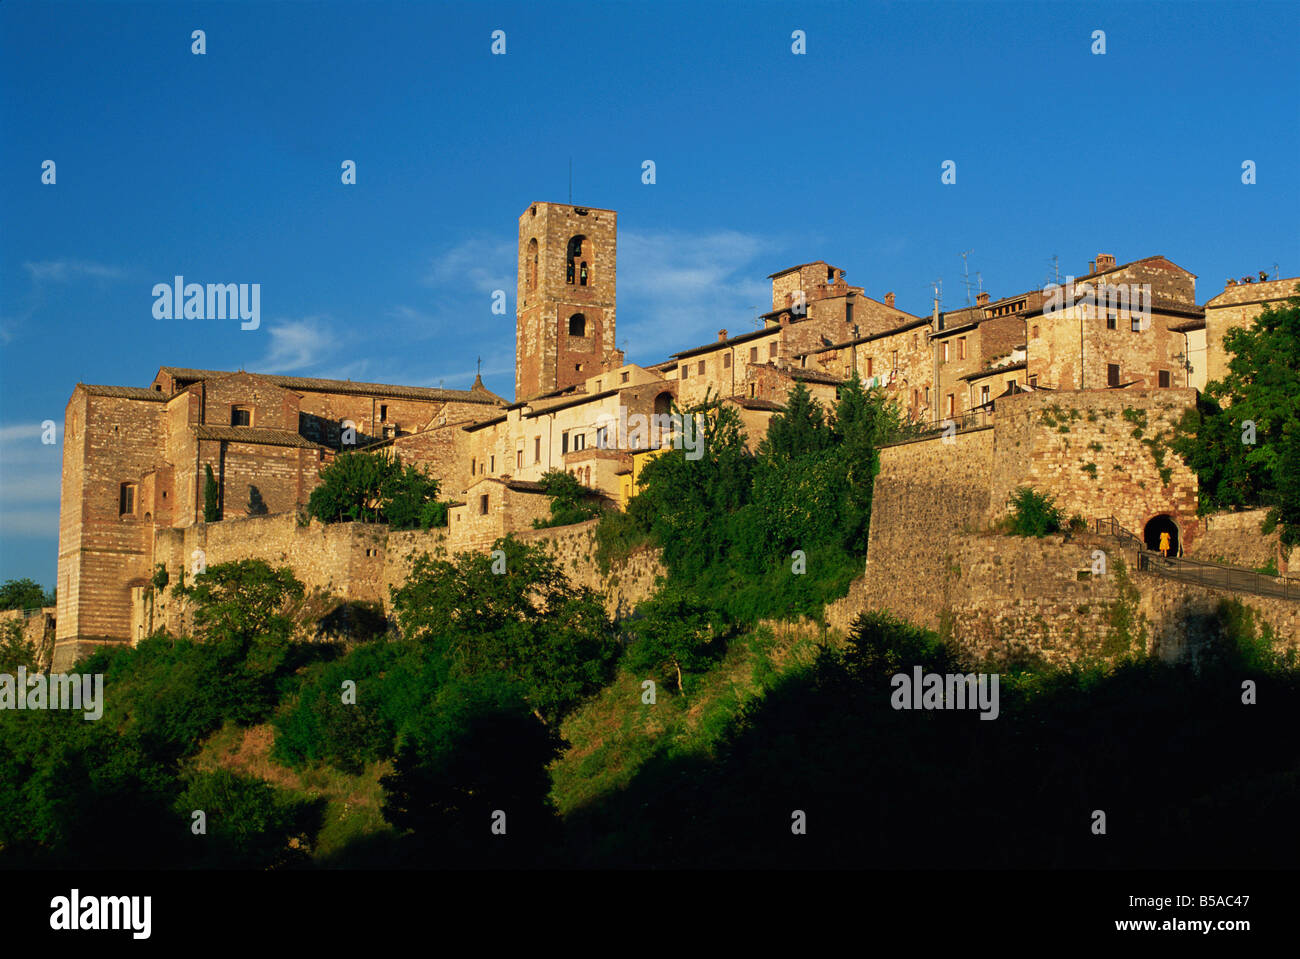 Evening in the old town viewed from below, Colle di Val d'Elsa, Tuscany, Italy, Europe - Stock Image